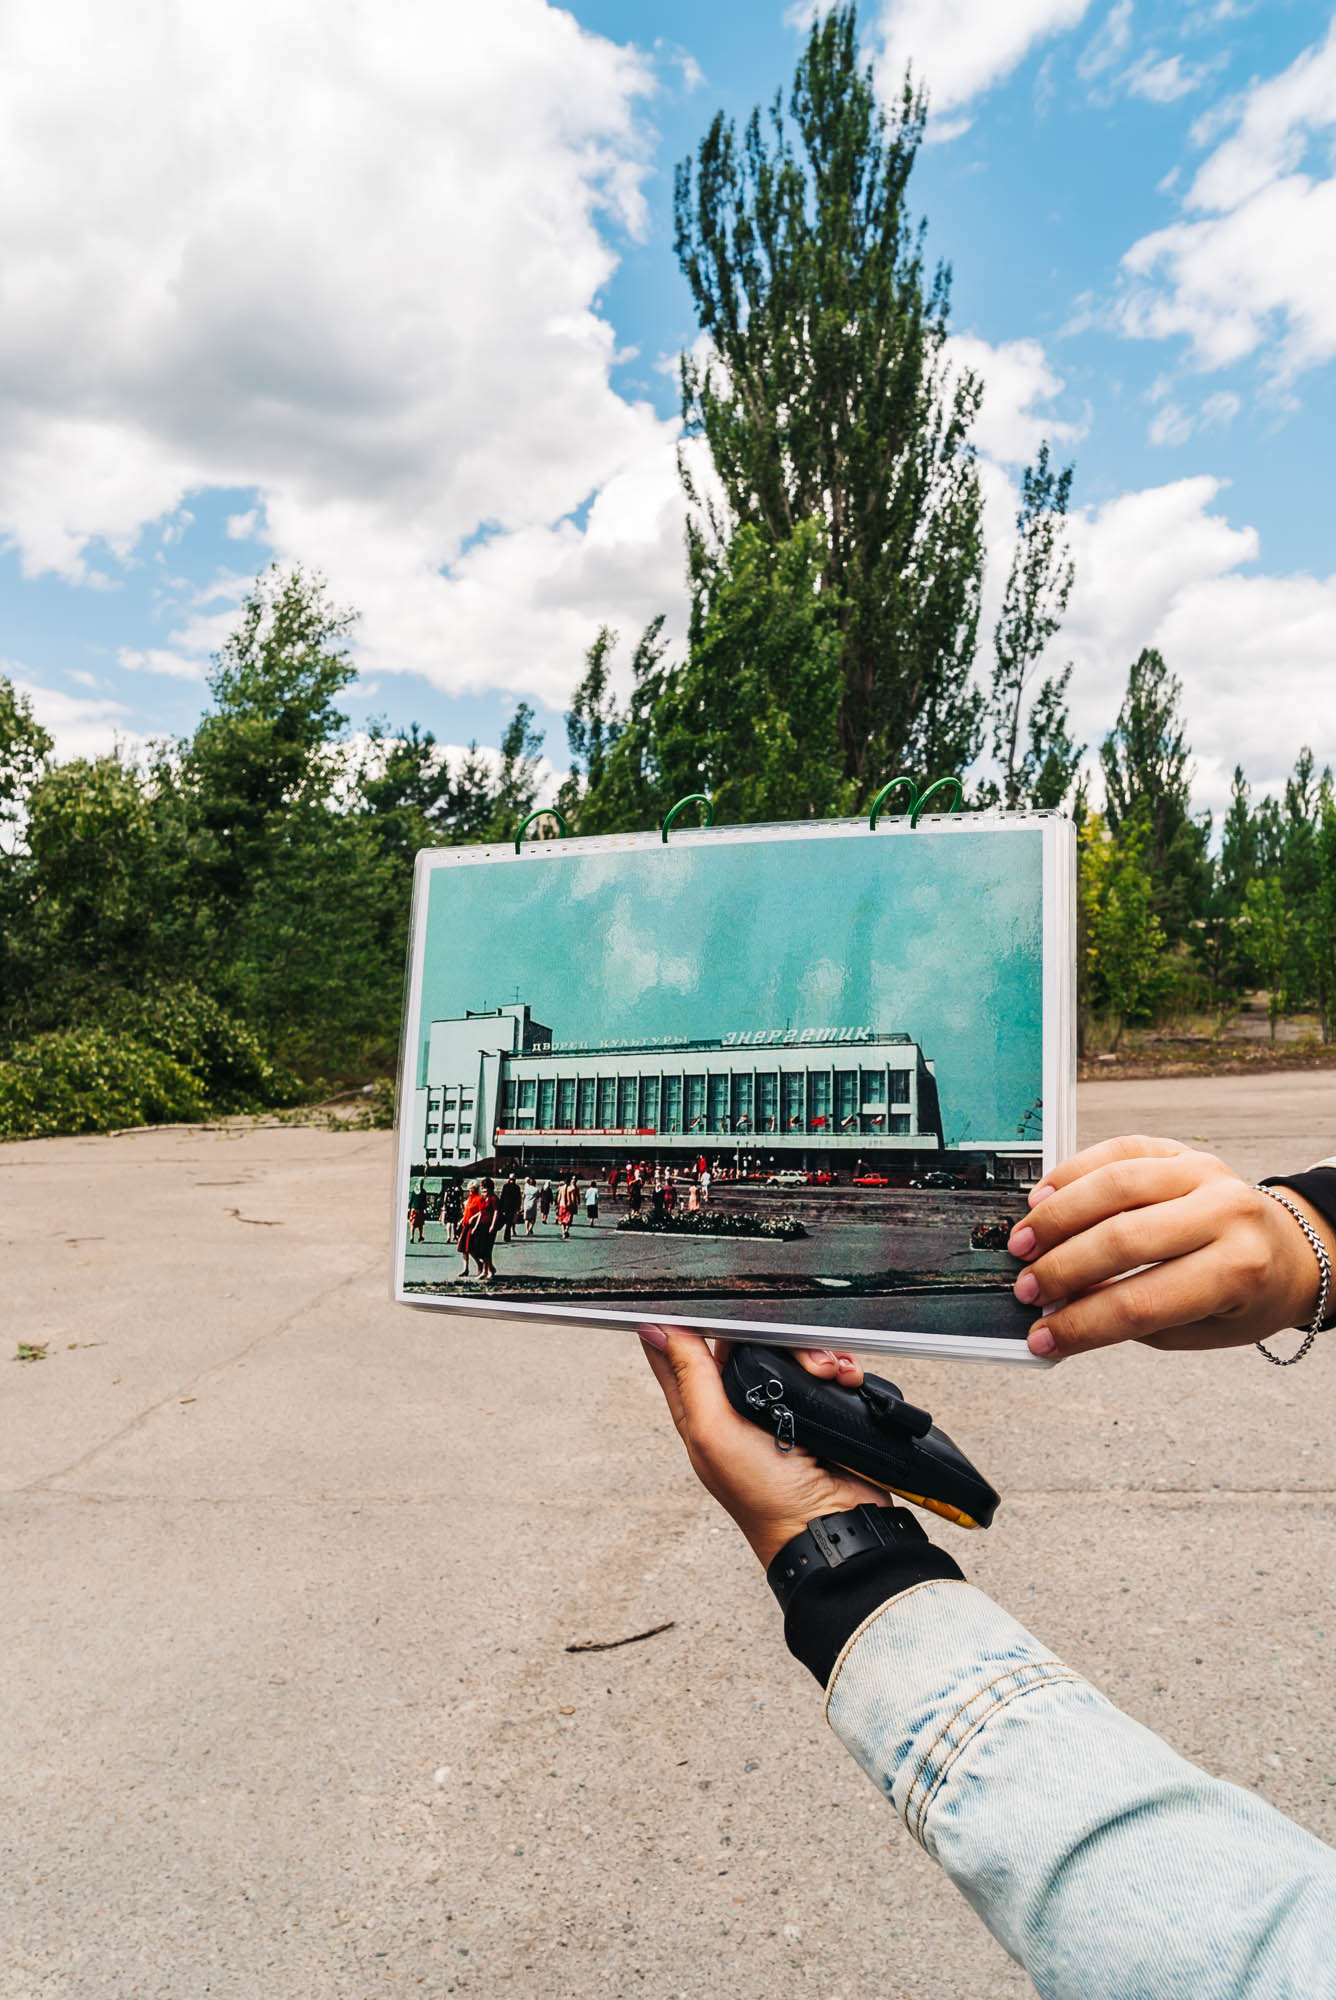 Tanya showing us pictures of Pripyat before the catastrophe